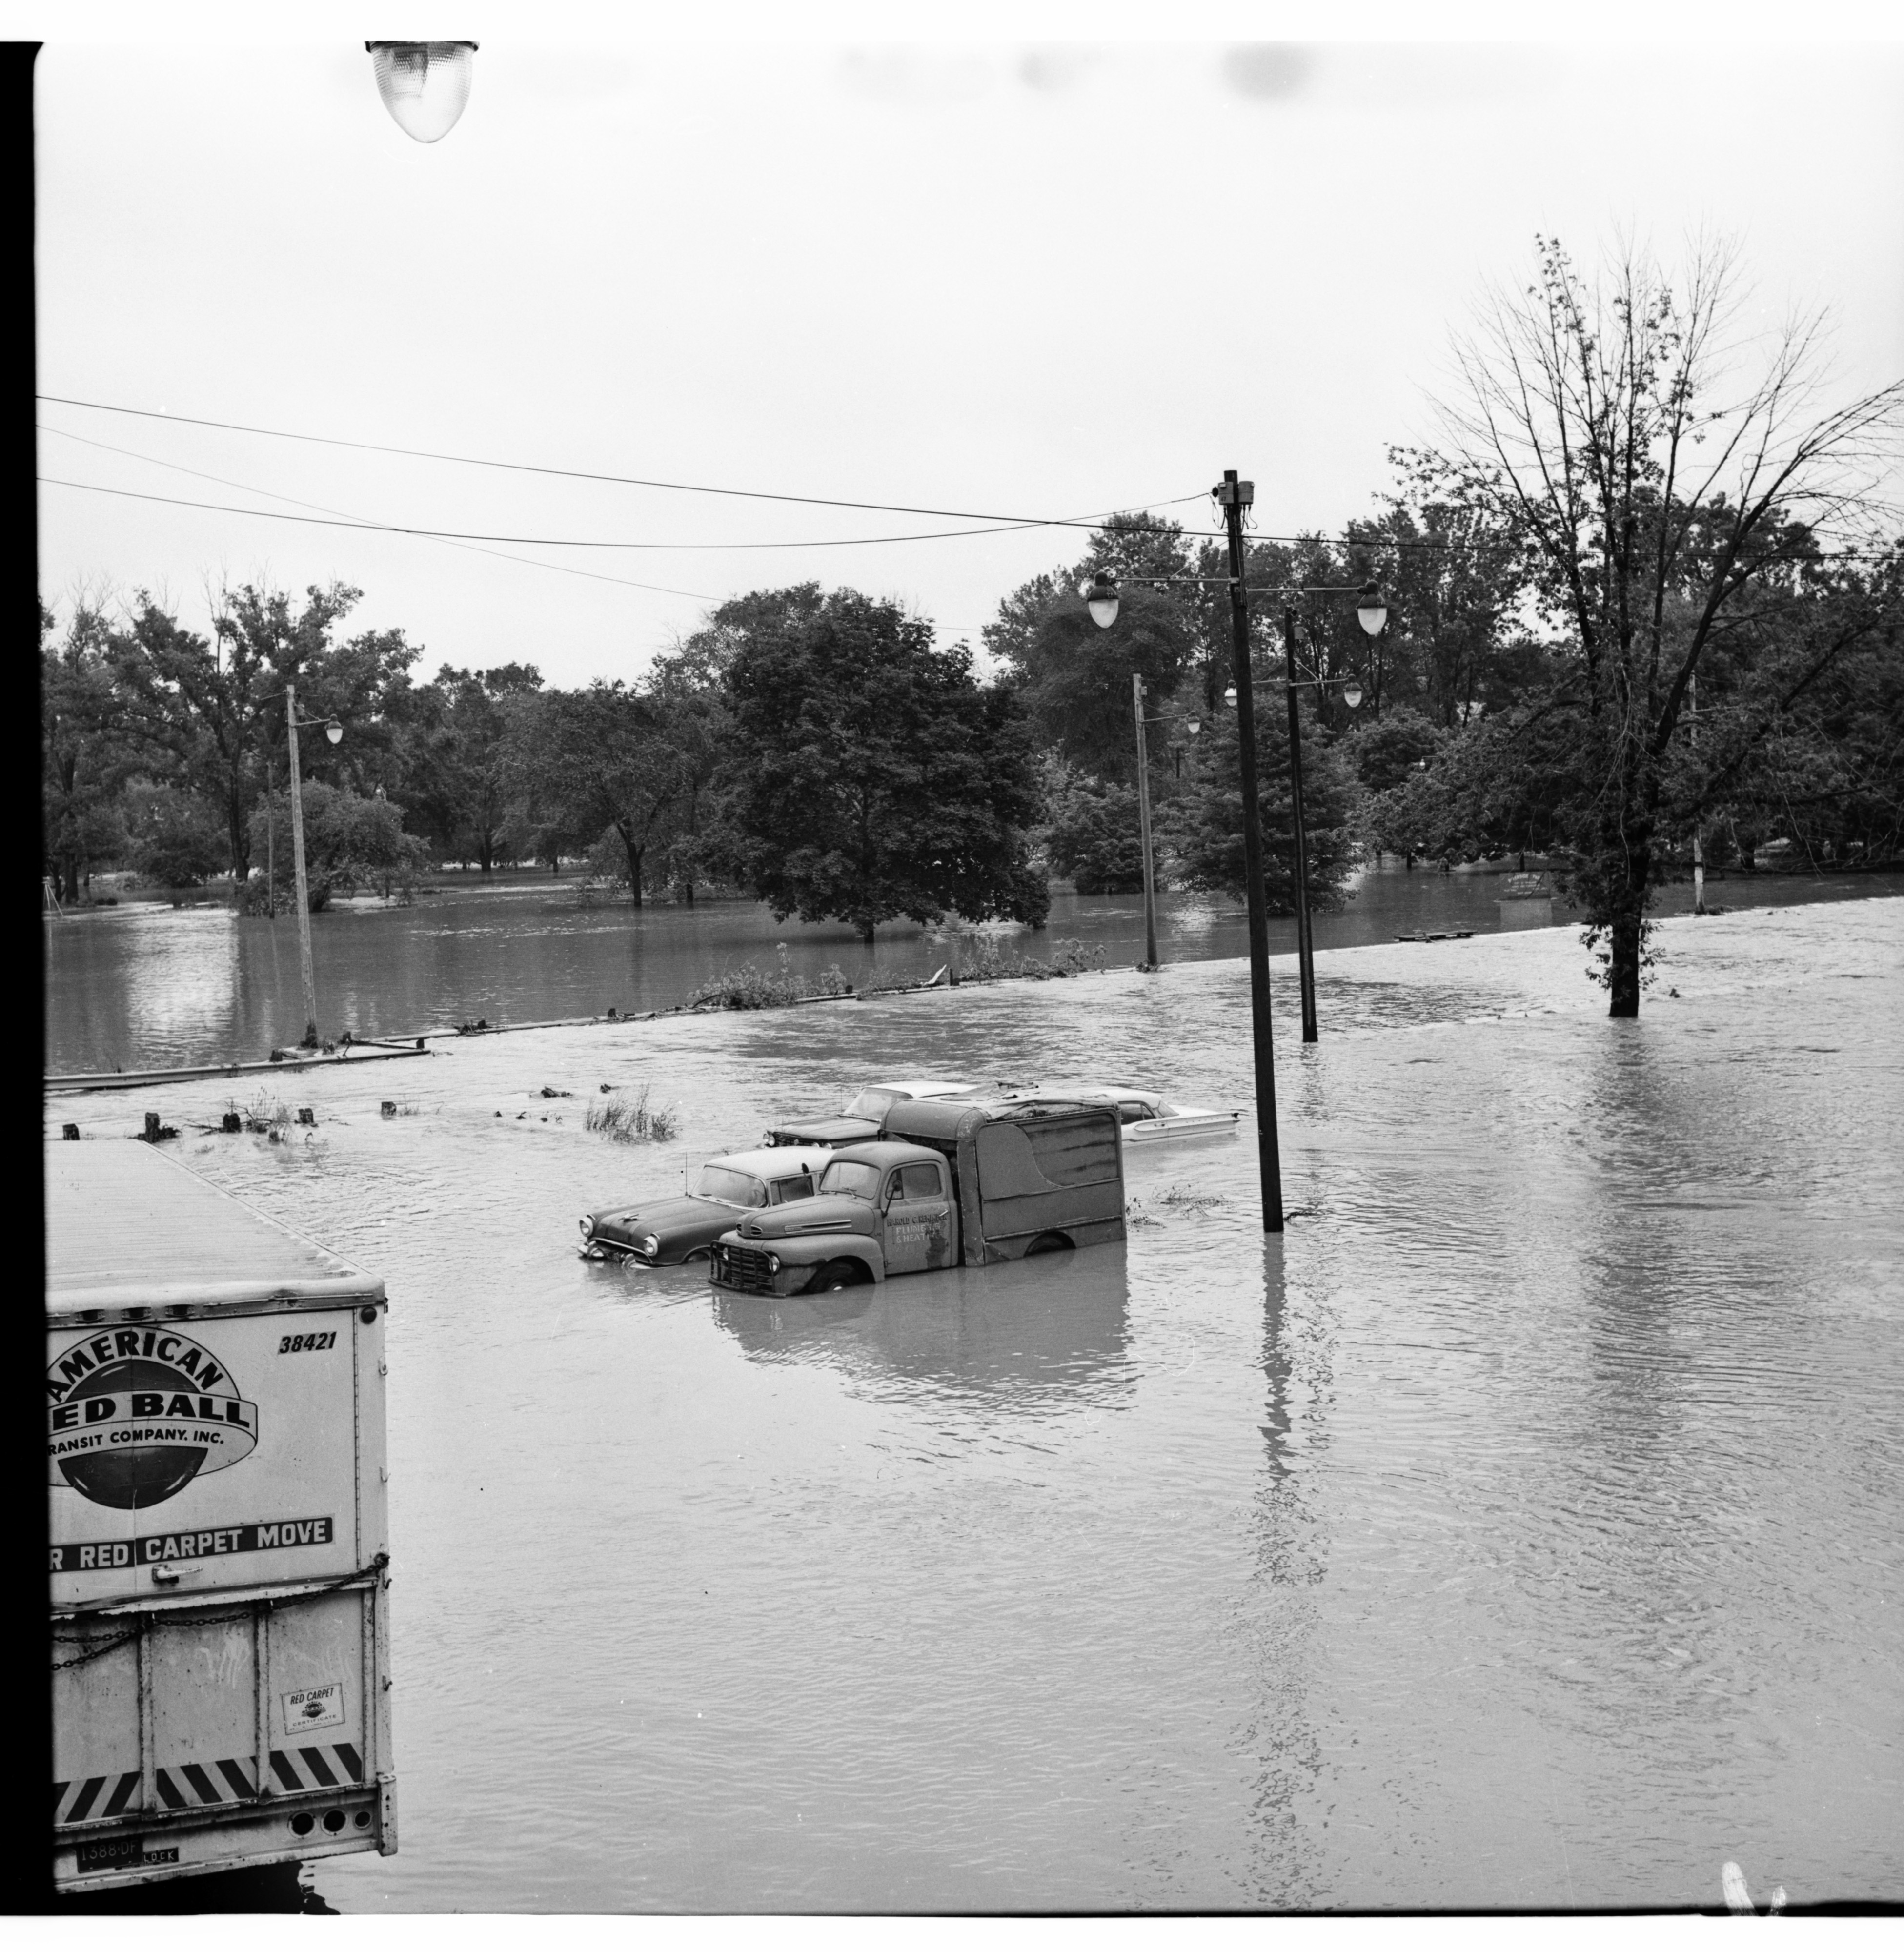 Flooded Park with Submerged Cars, June 1968 Flood image